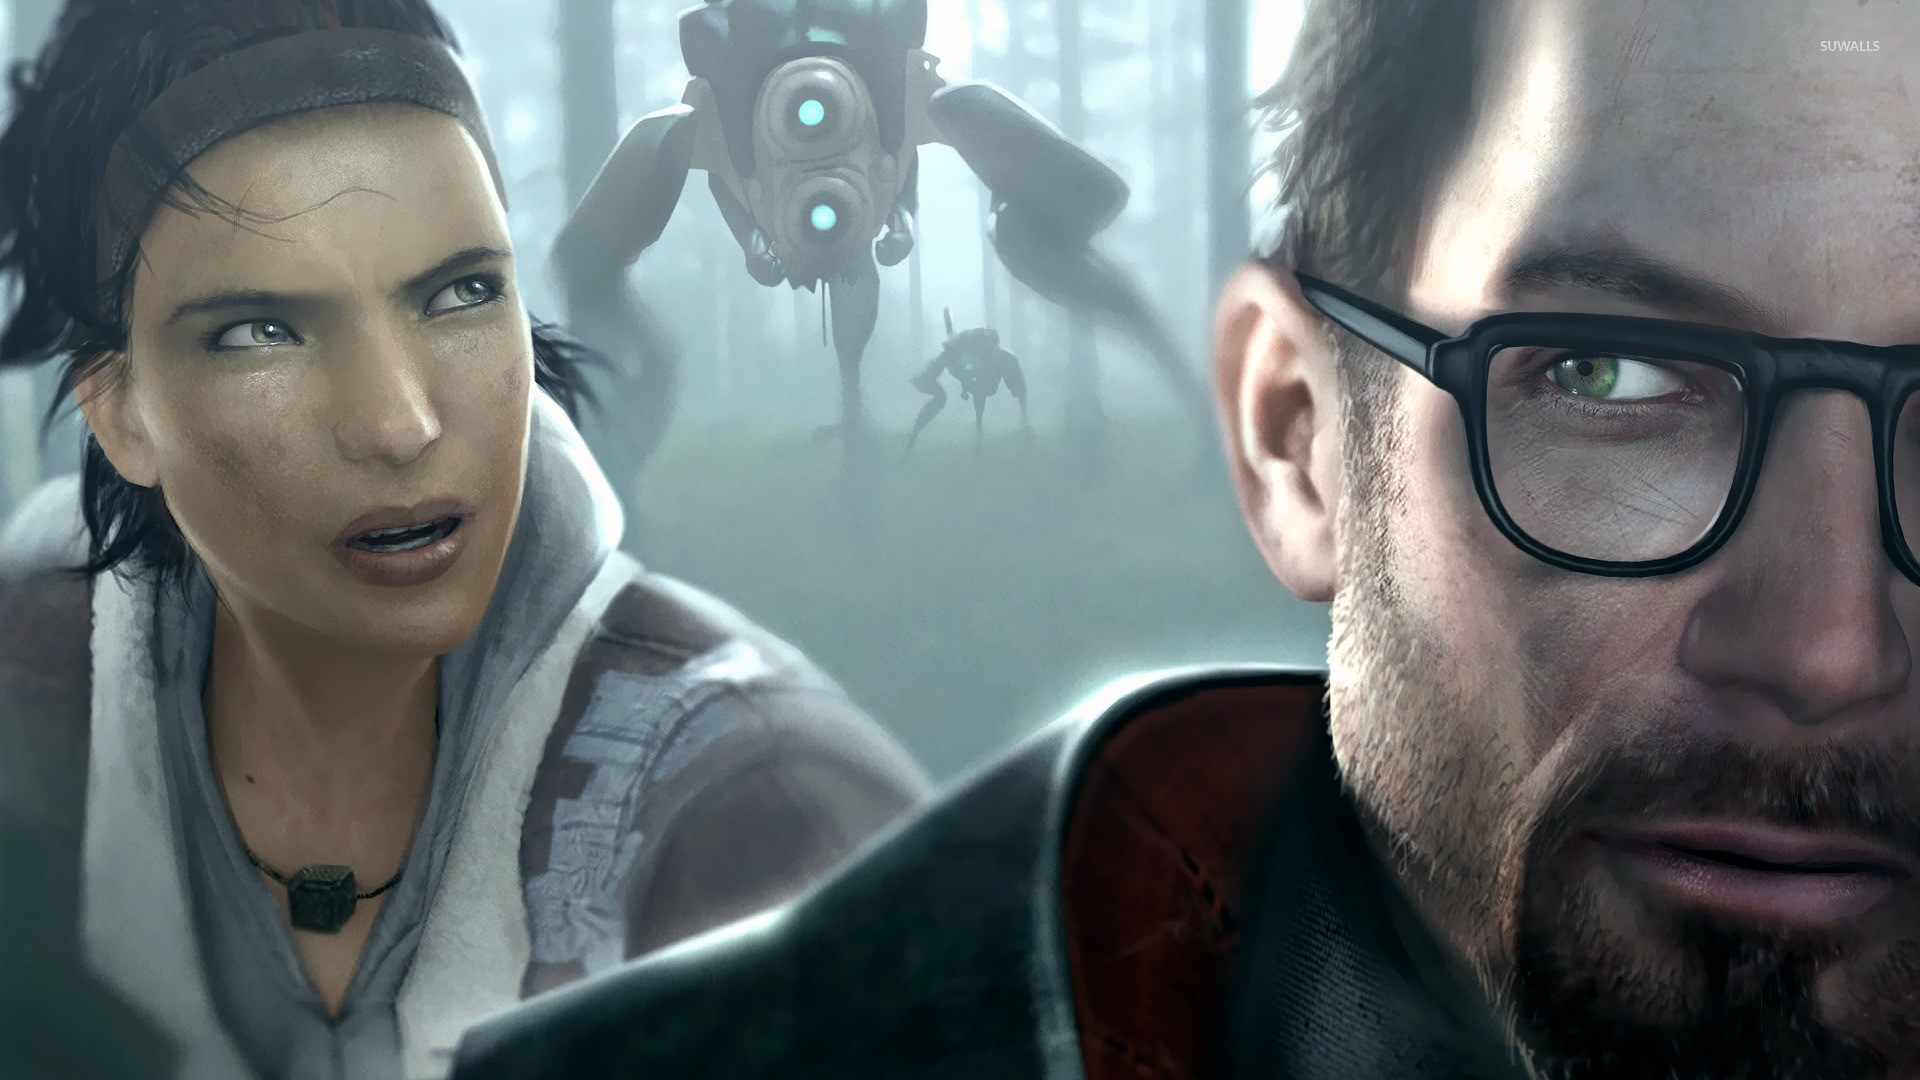 Half Life 2 Wallpaper Download Free Beautiful Full Hd